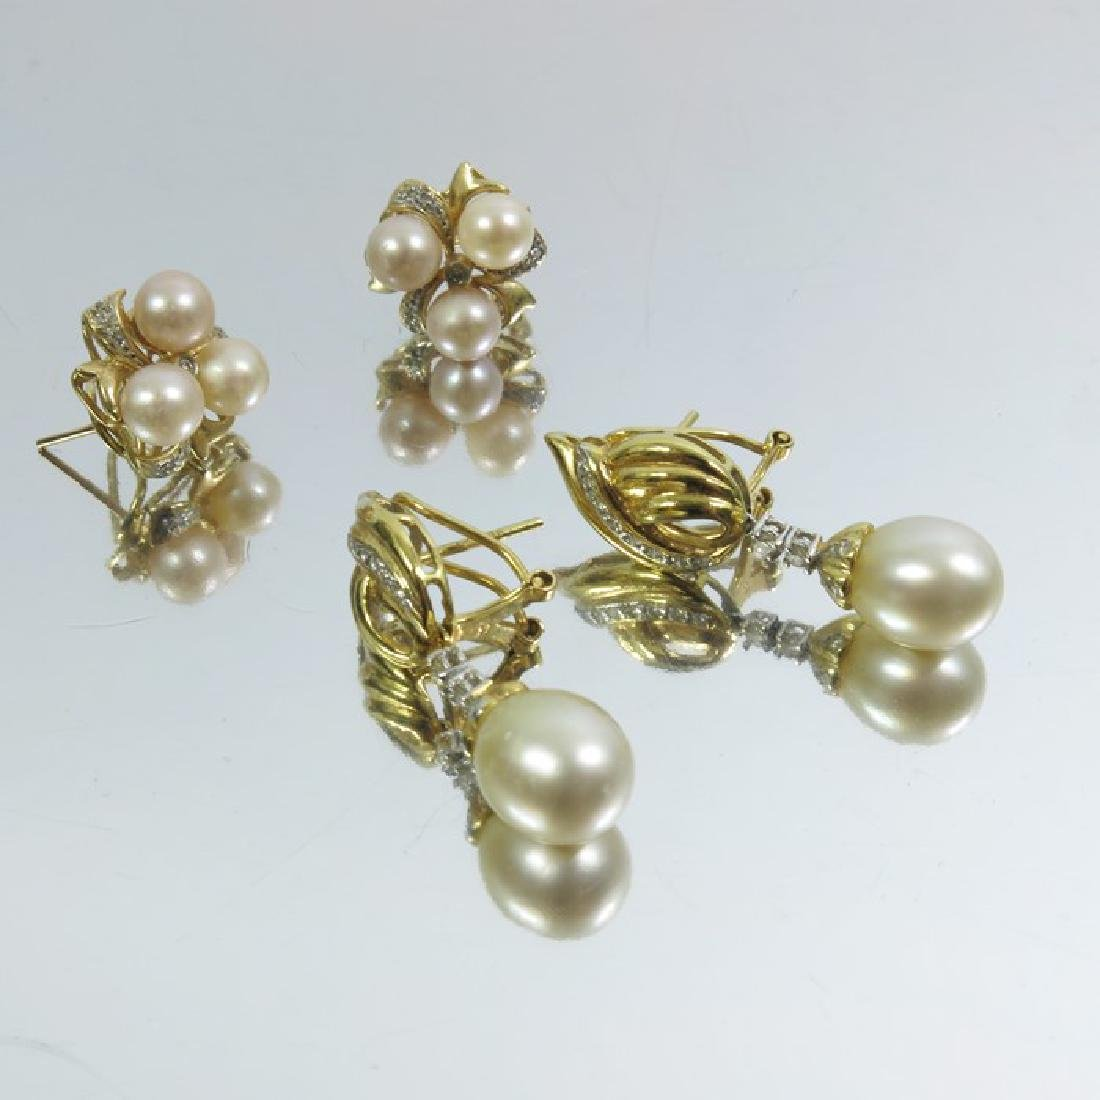 Two pairs of pearl and diamond earrings, set in yellow